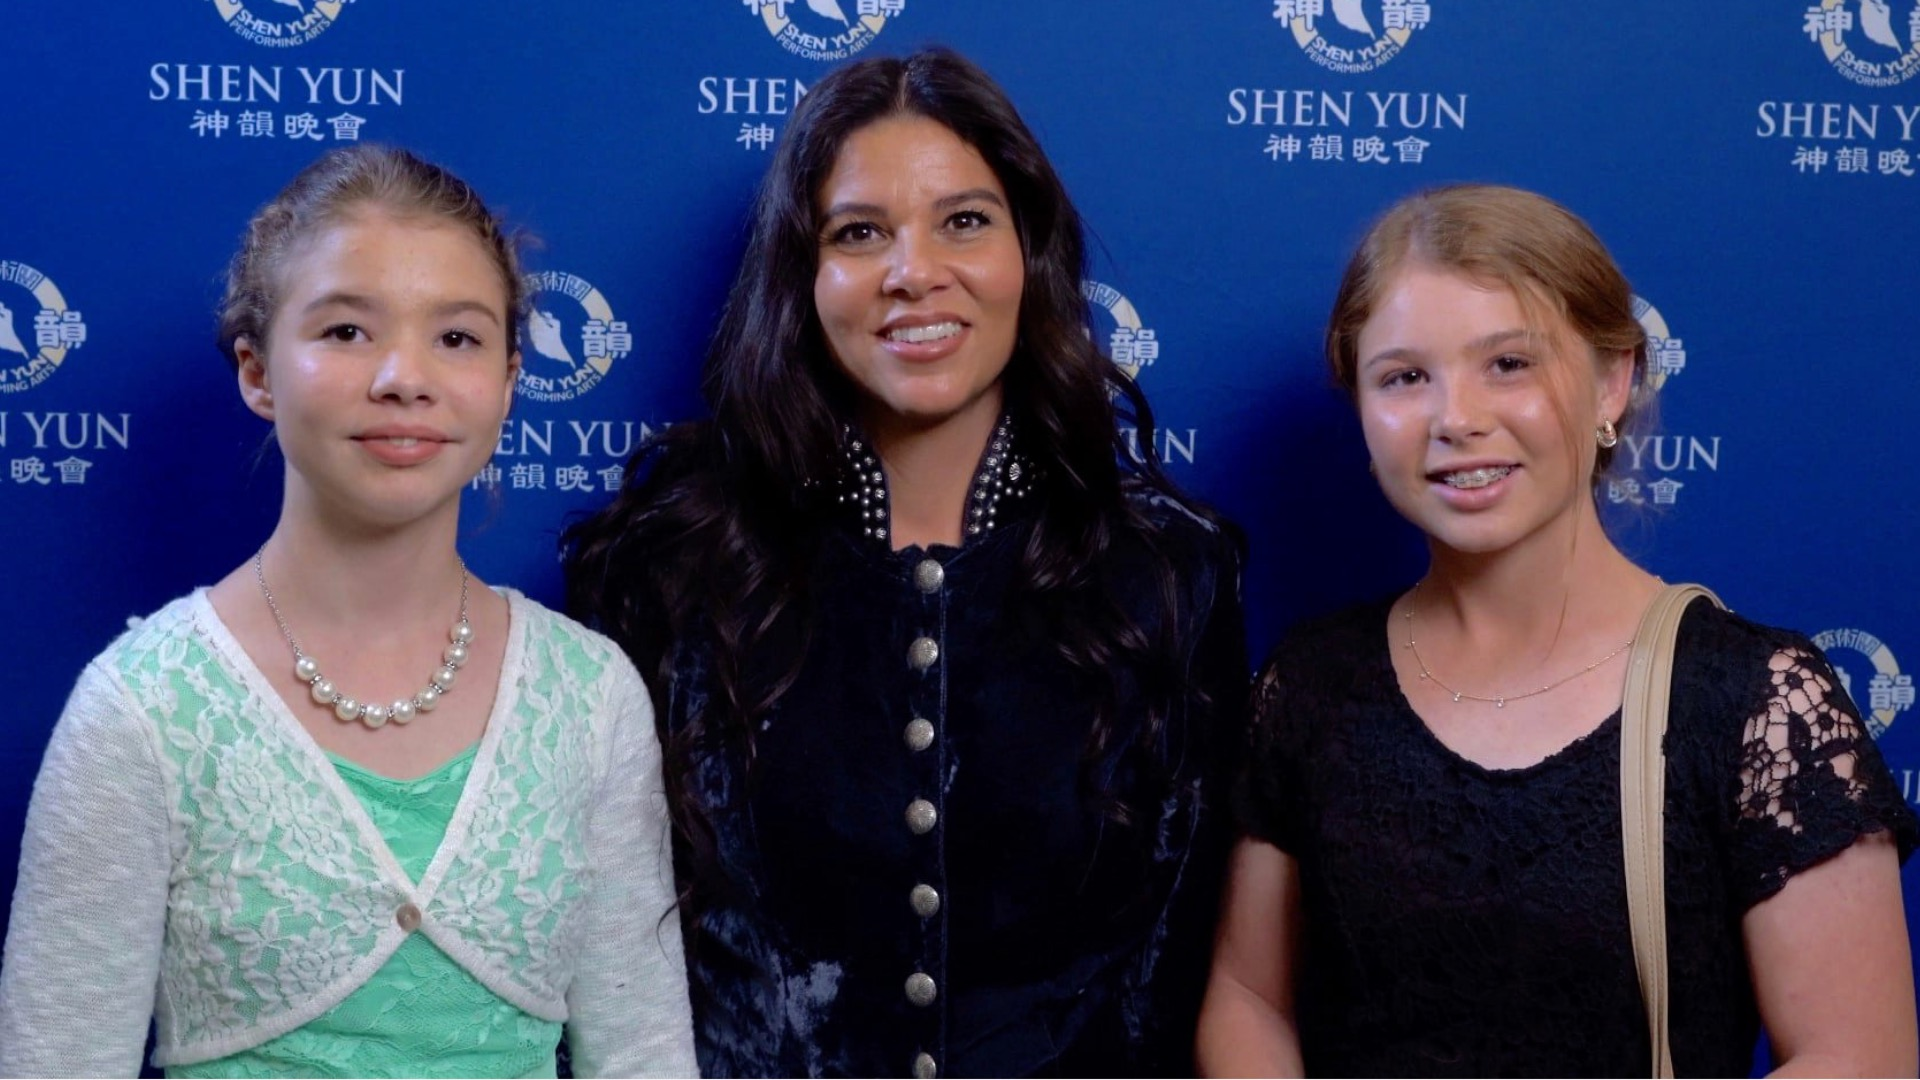 'It Is Refreshing': Montana Audience After Shen Yun